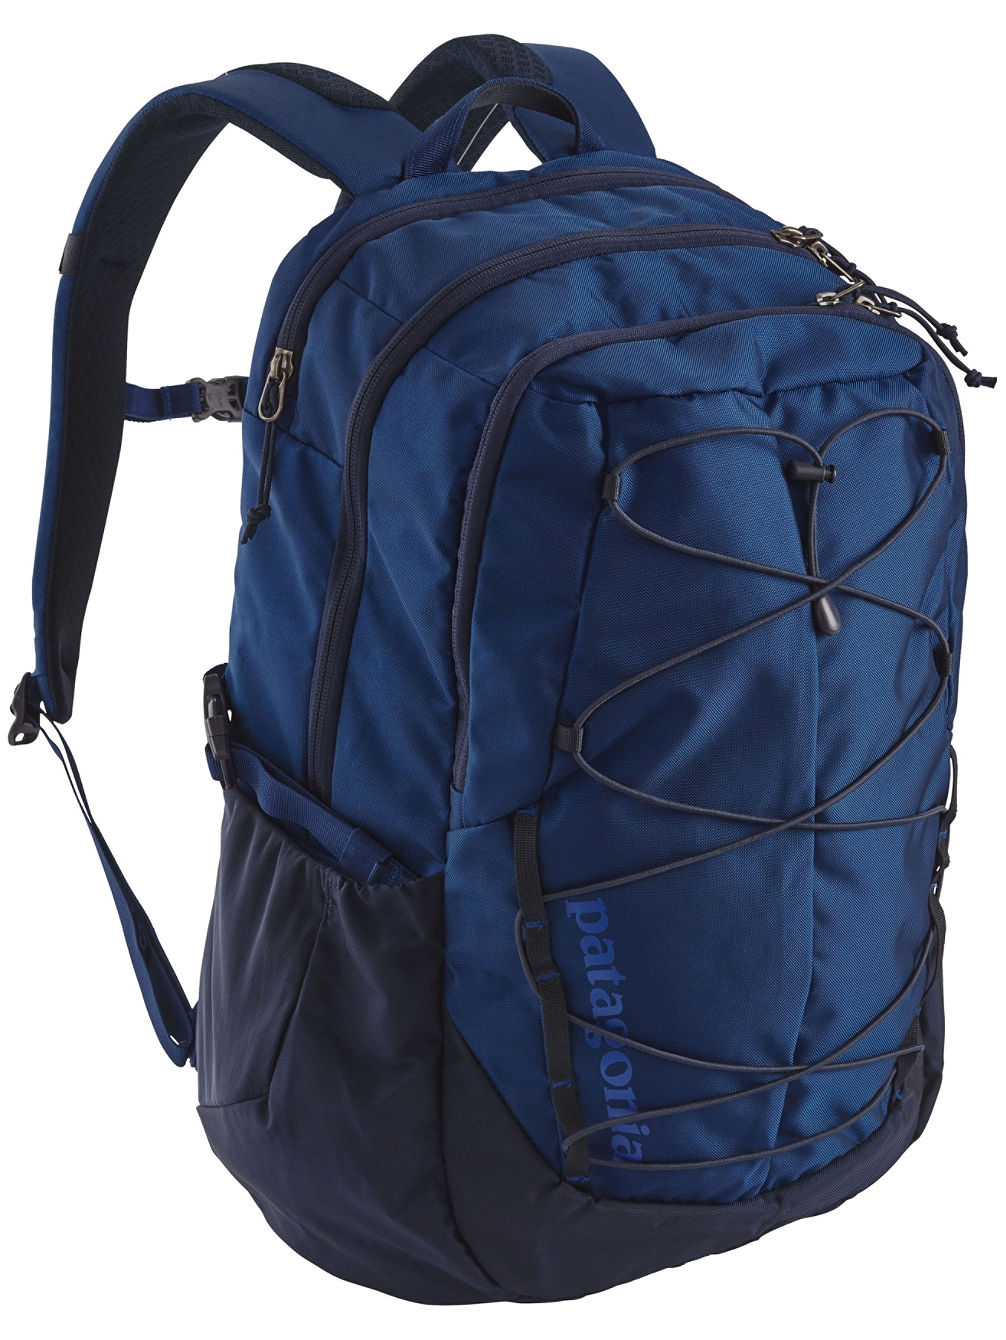 Chacabuco 30L Backpack